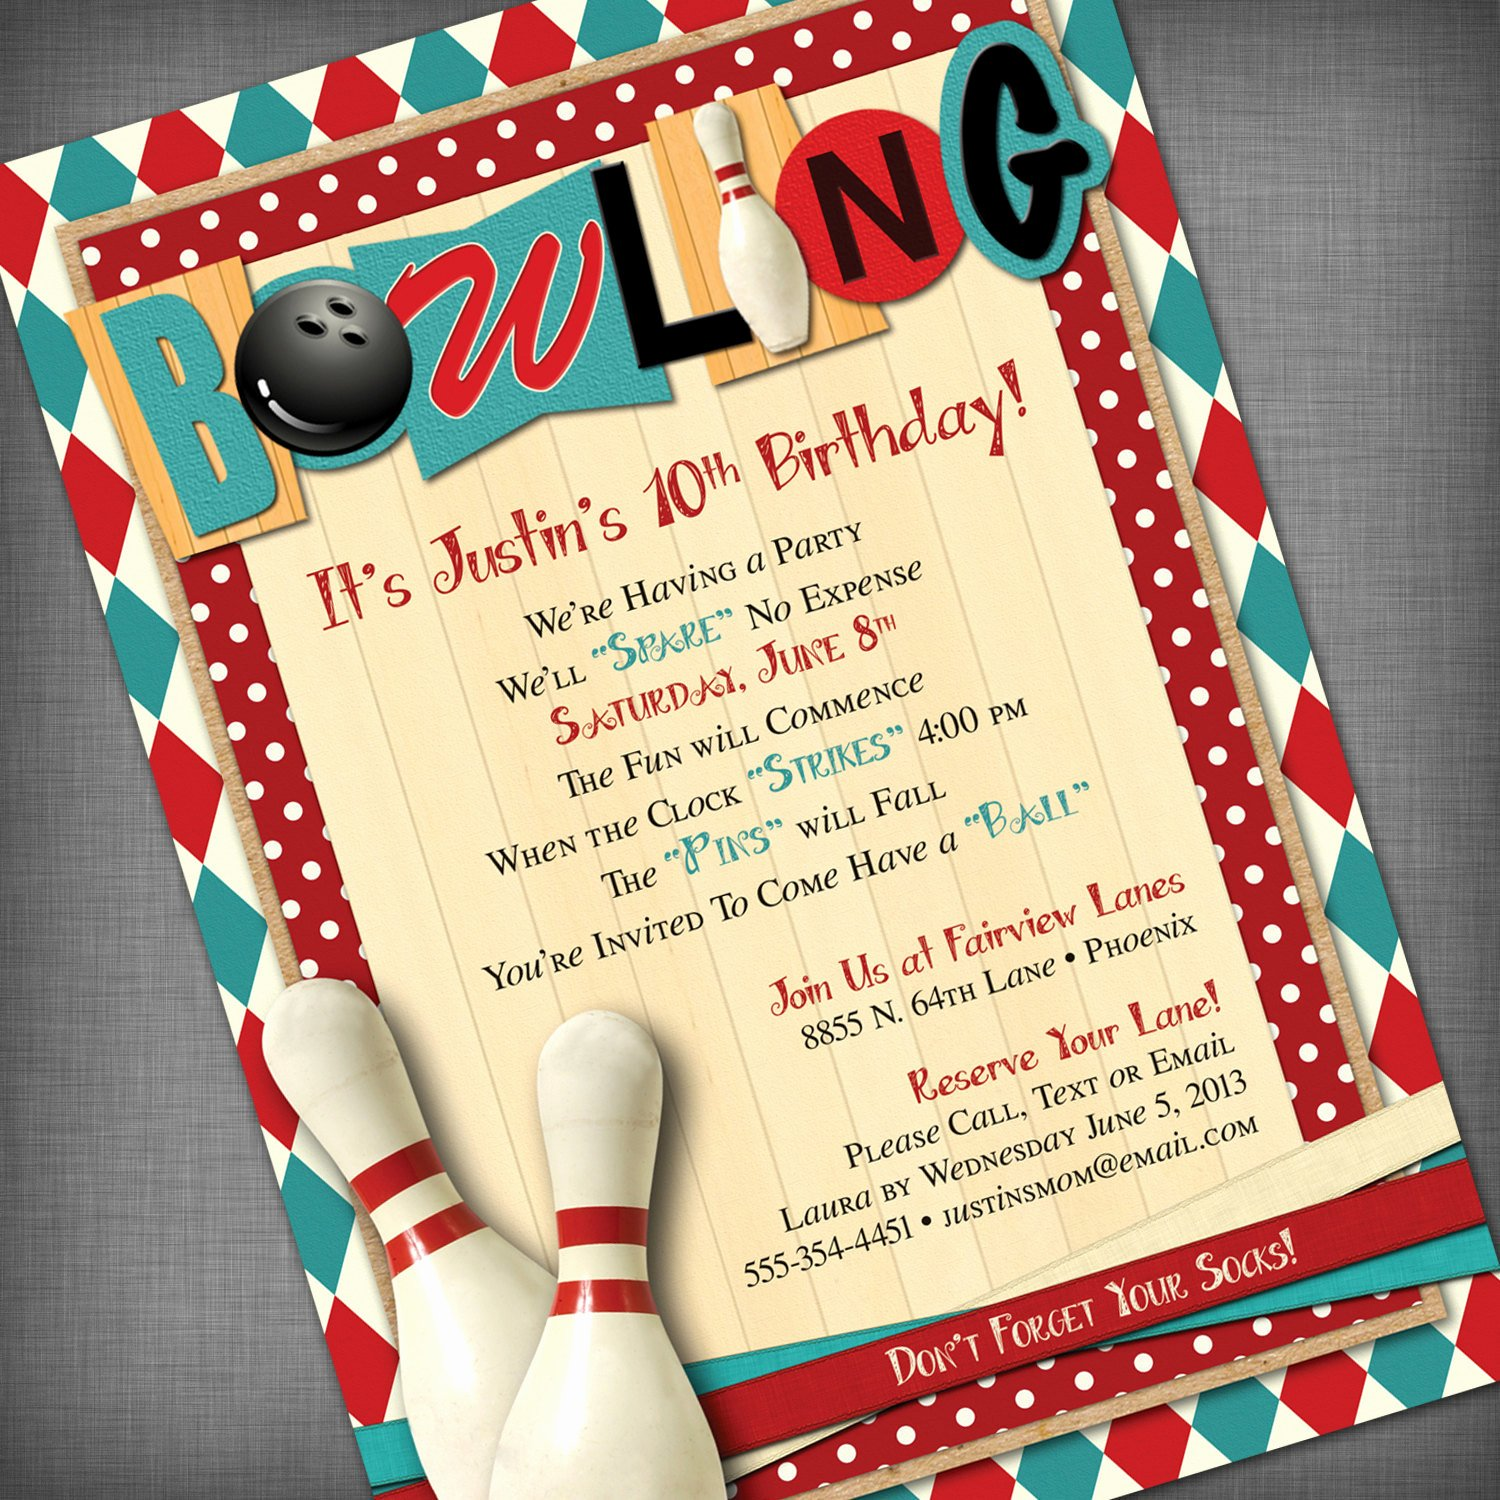 Bowling Party Invites Templates Inspirational Bowling Party Customized Printable Invitation